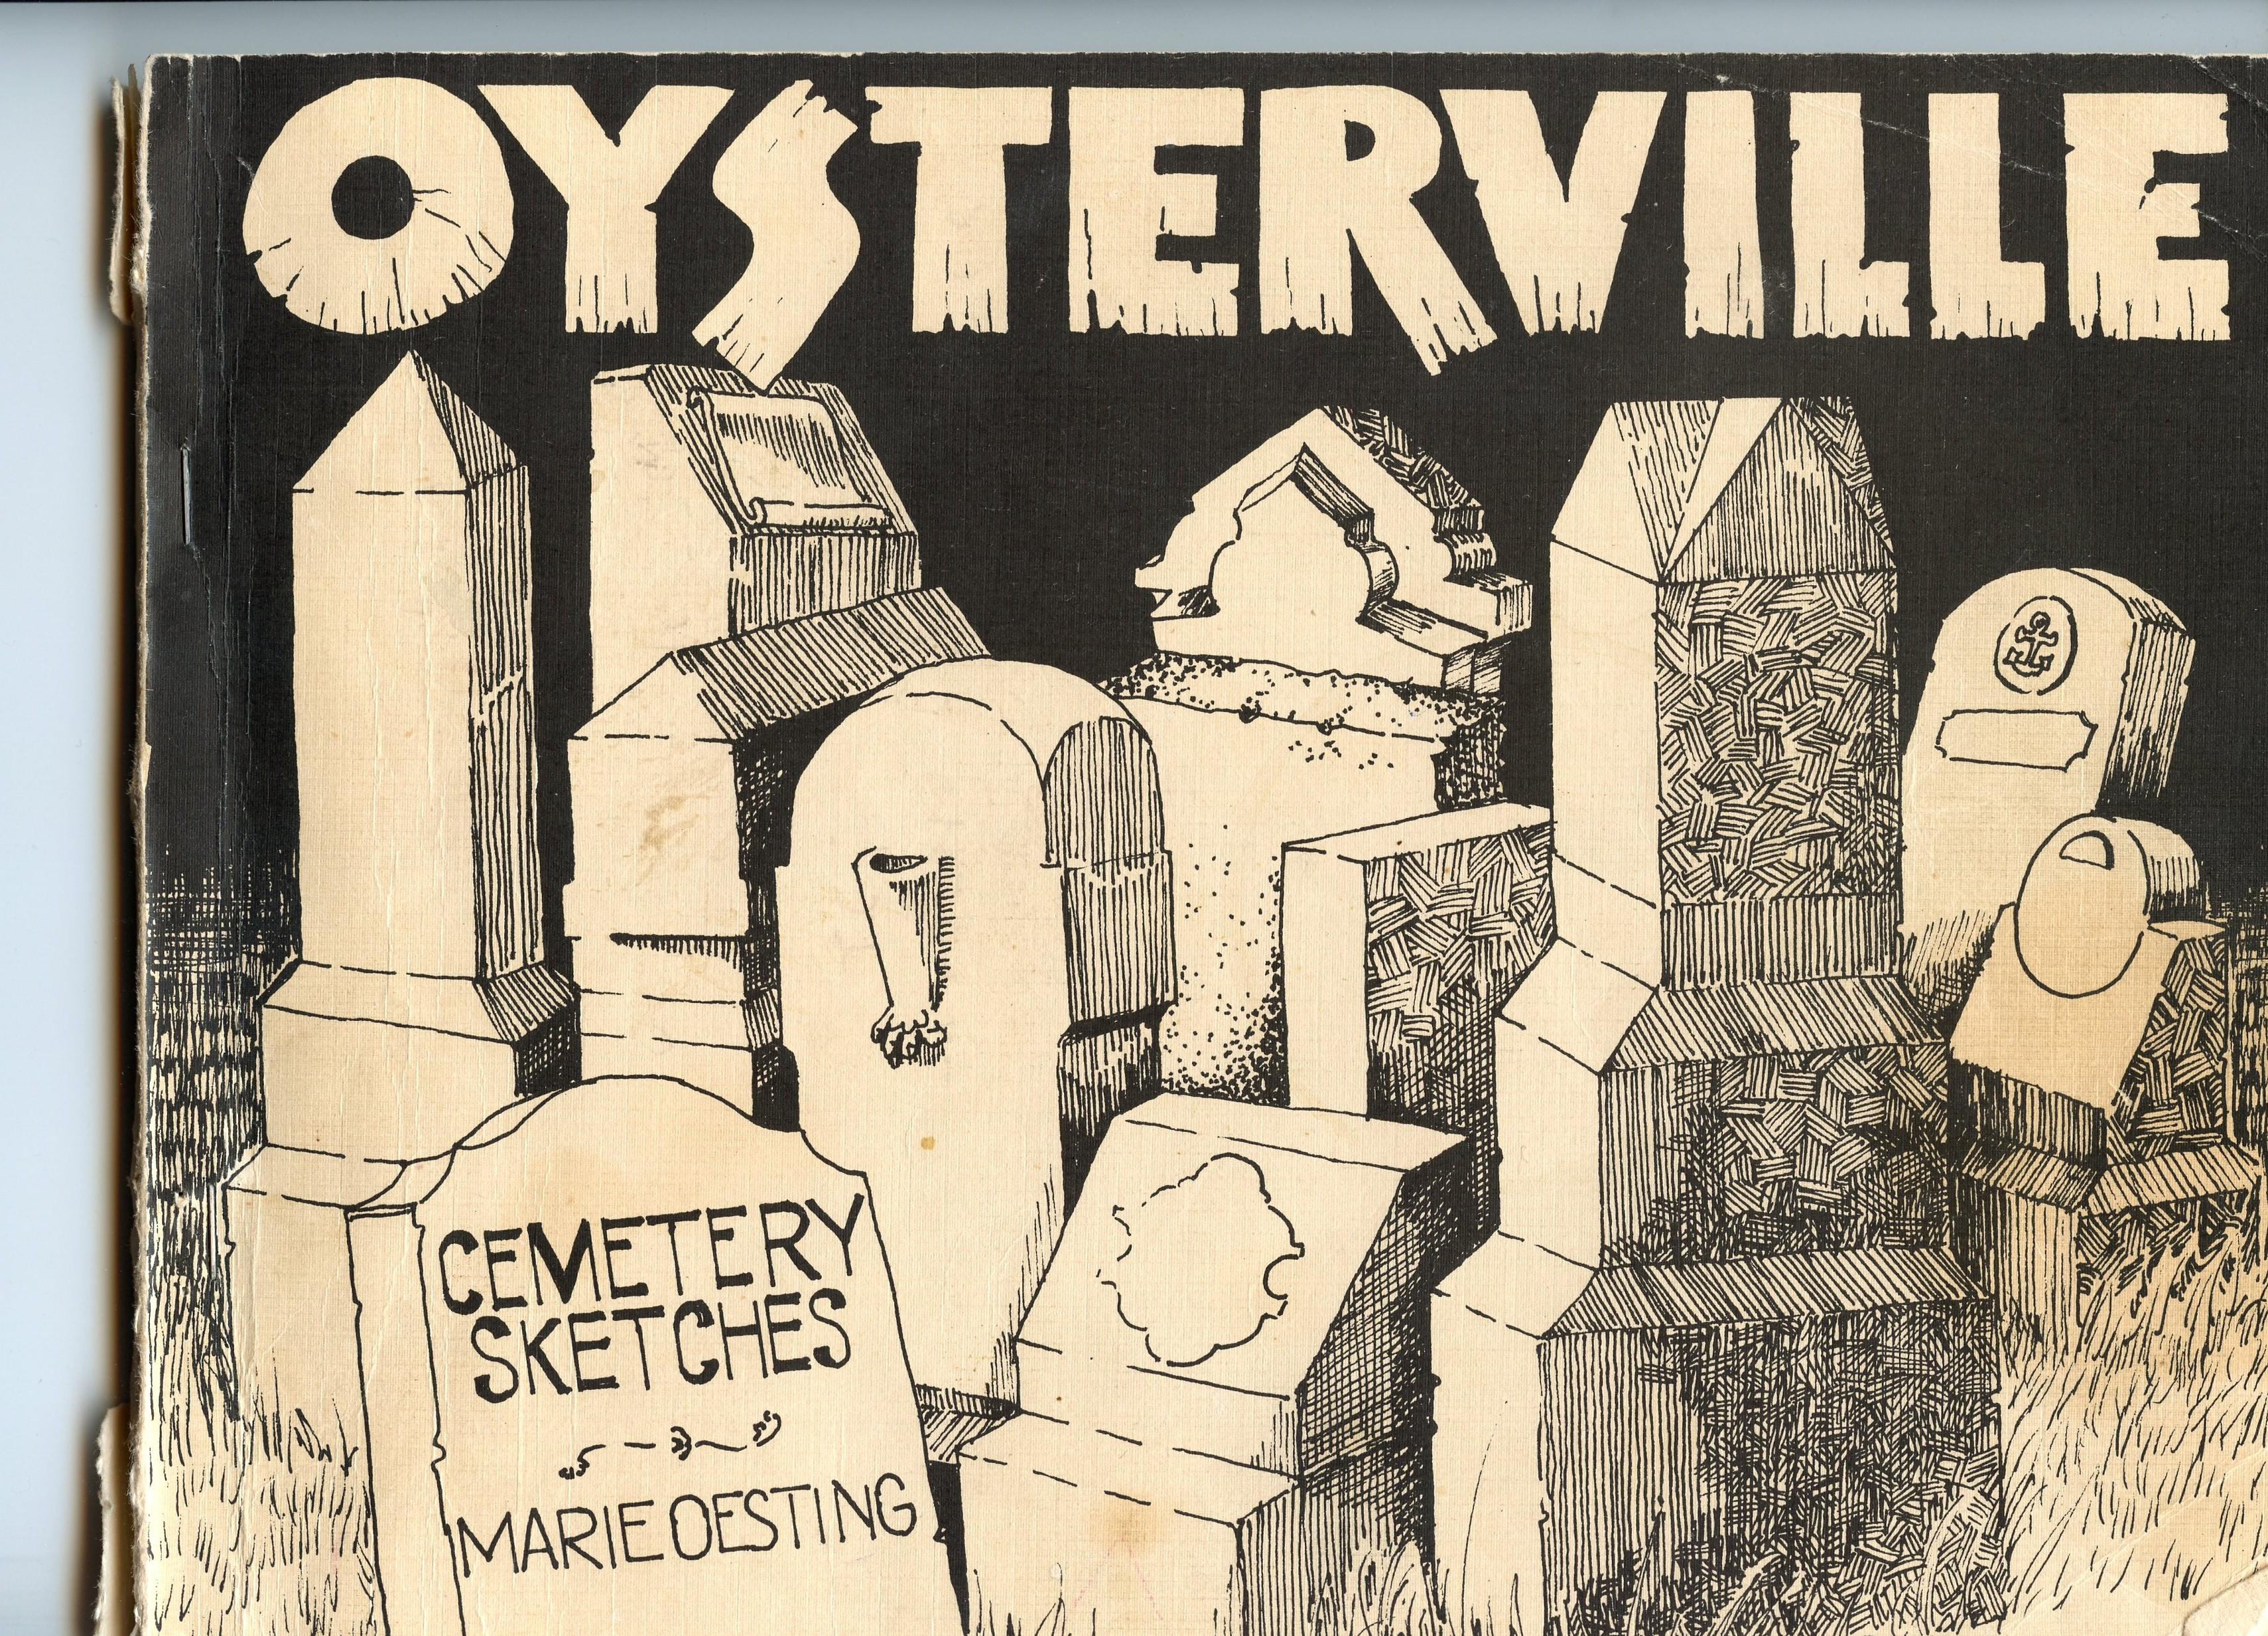 Oysterville Cemetry Sketches